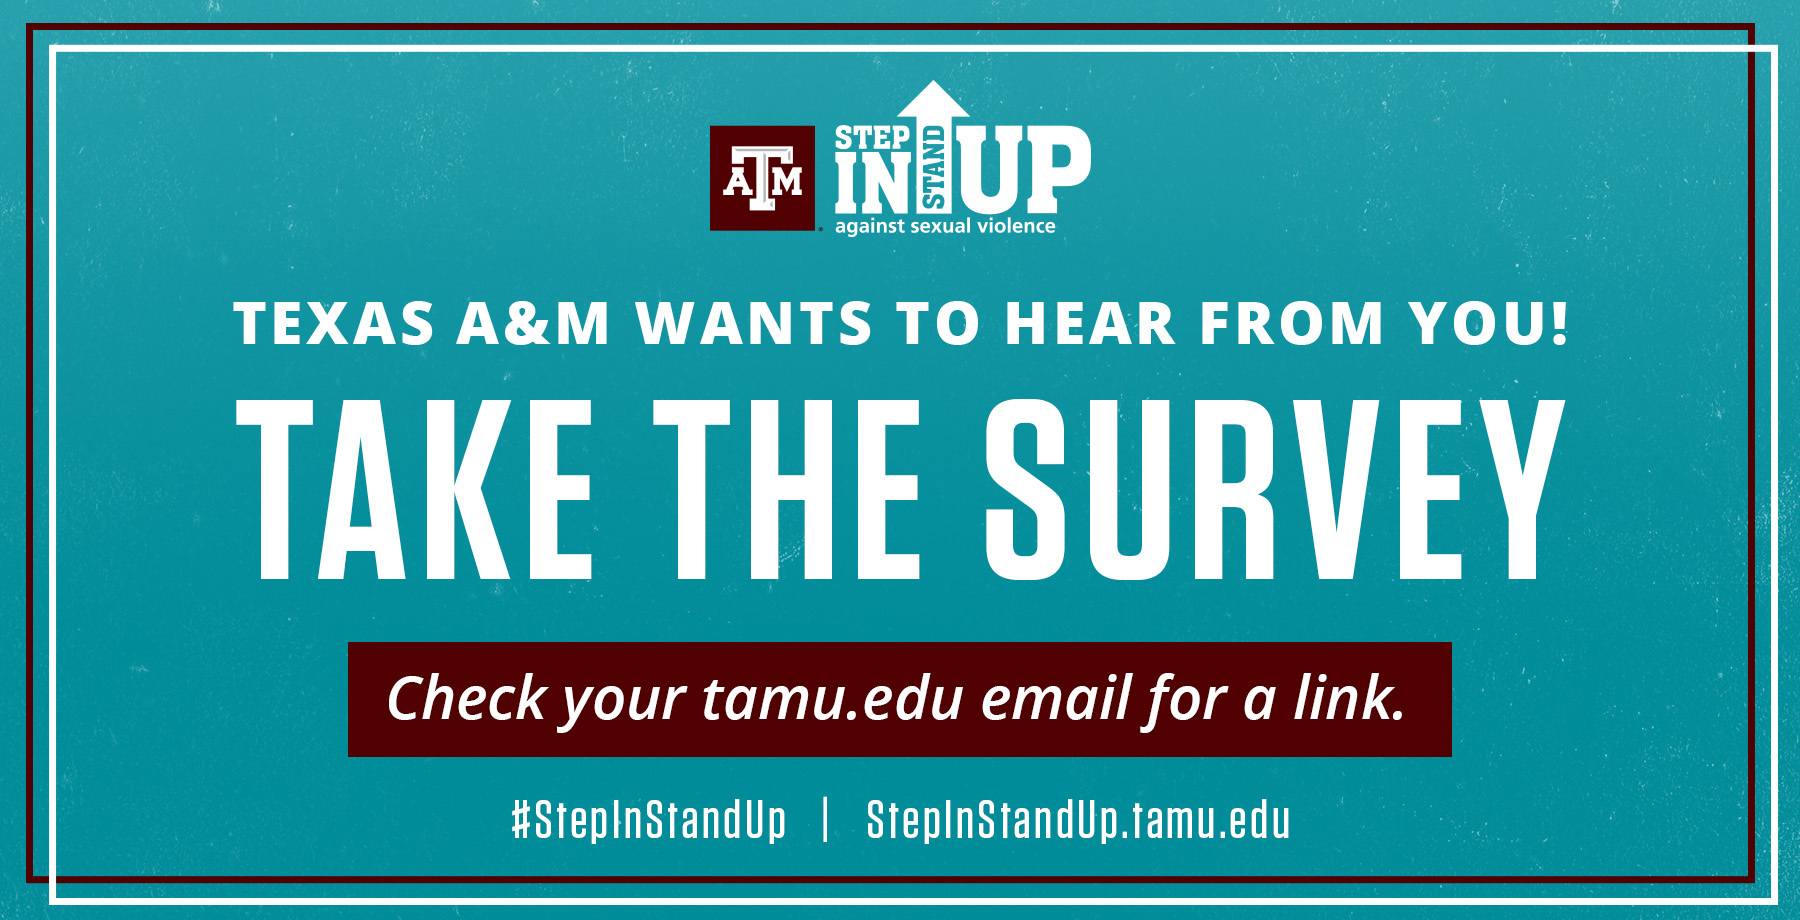 Take the survey check your TAMU.edu email